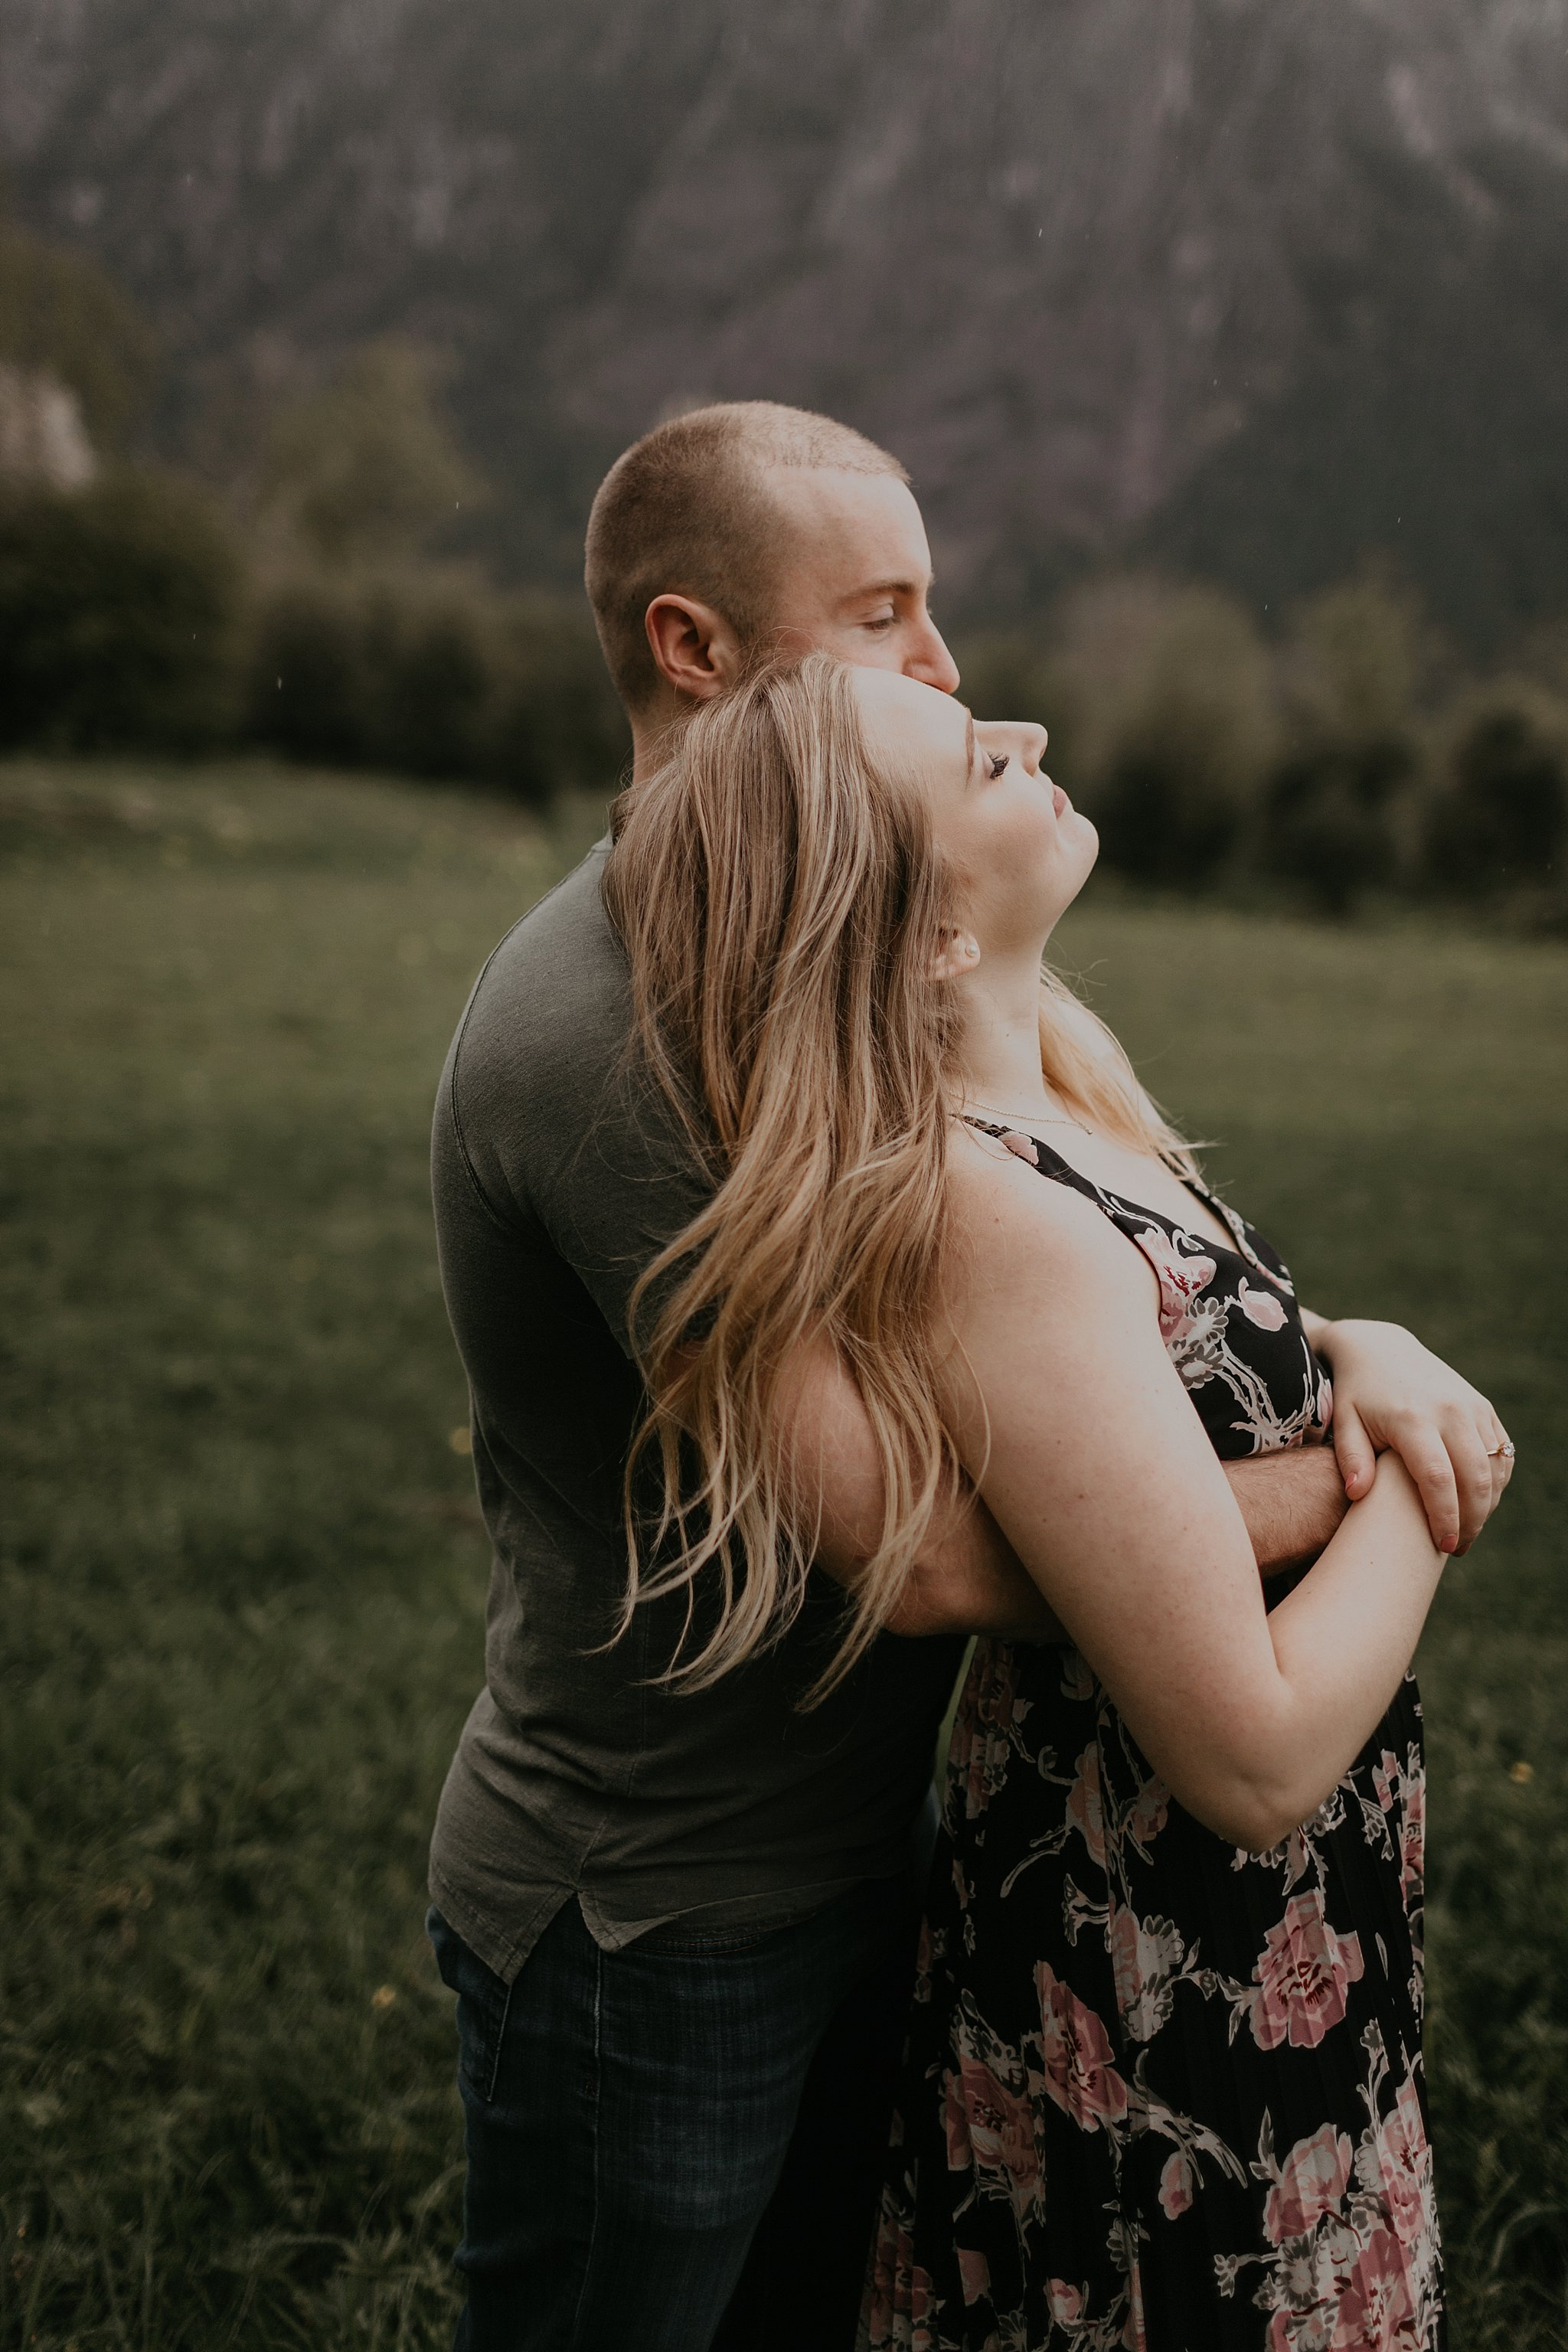 samantha_mcfarlen_bellingham_washington_engagement_photography_seattle_wedding_photographer_0301.jpg